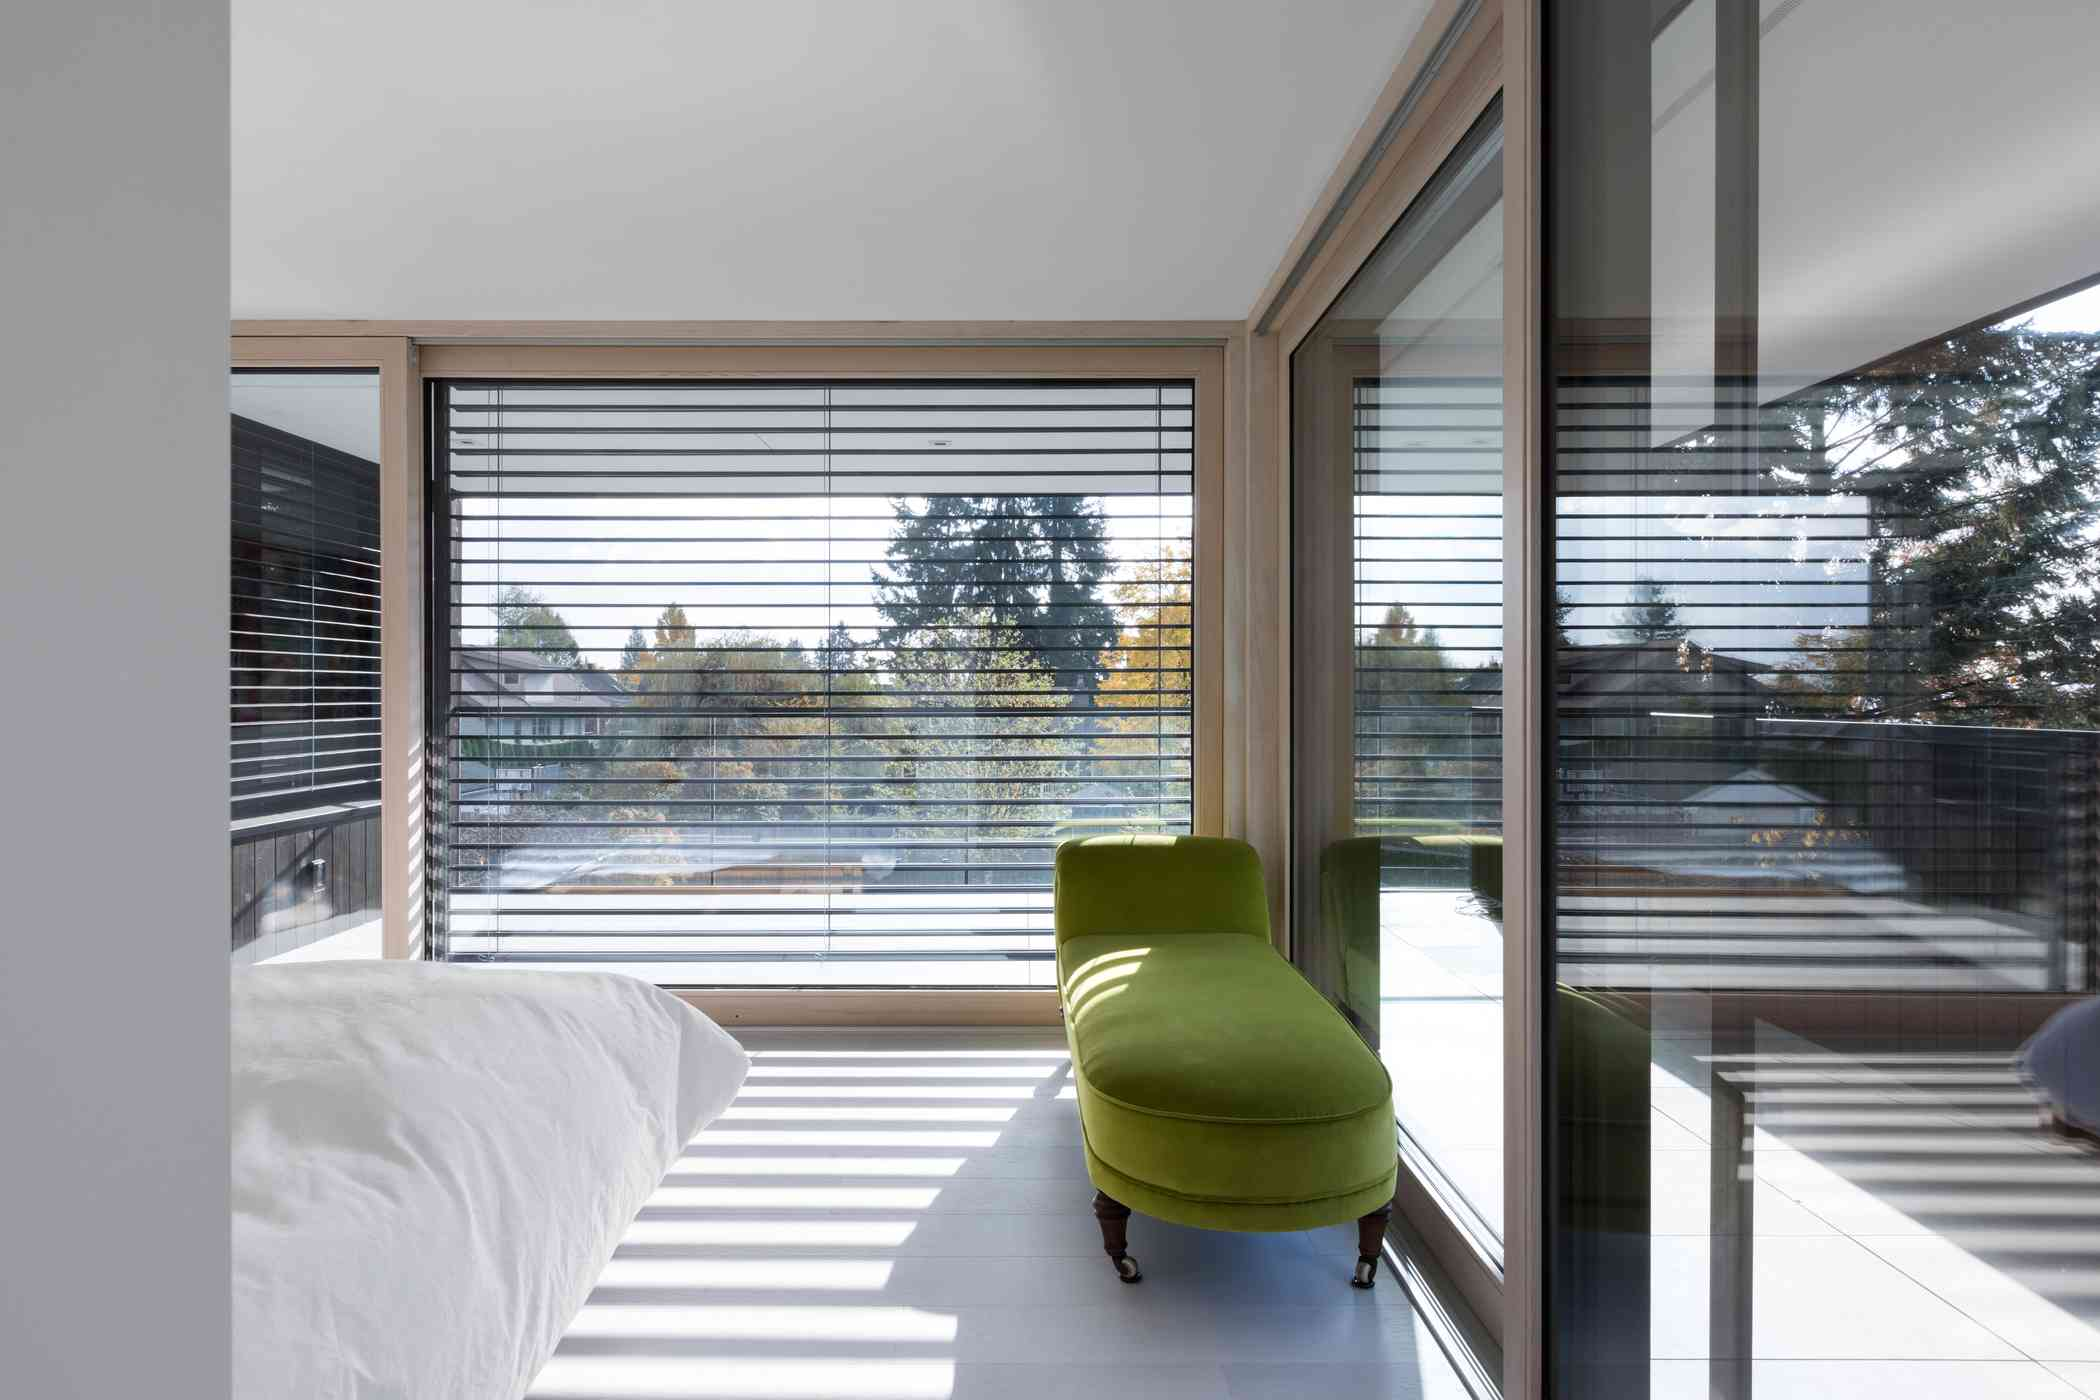 Bedroom with glass all around